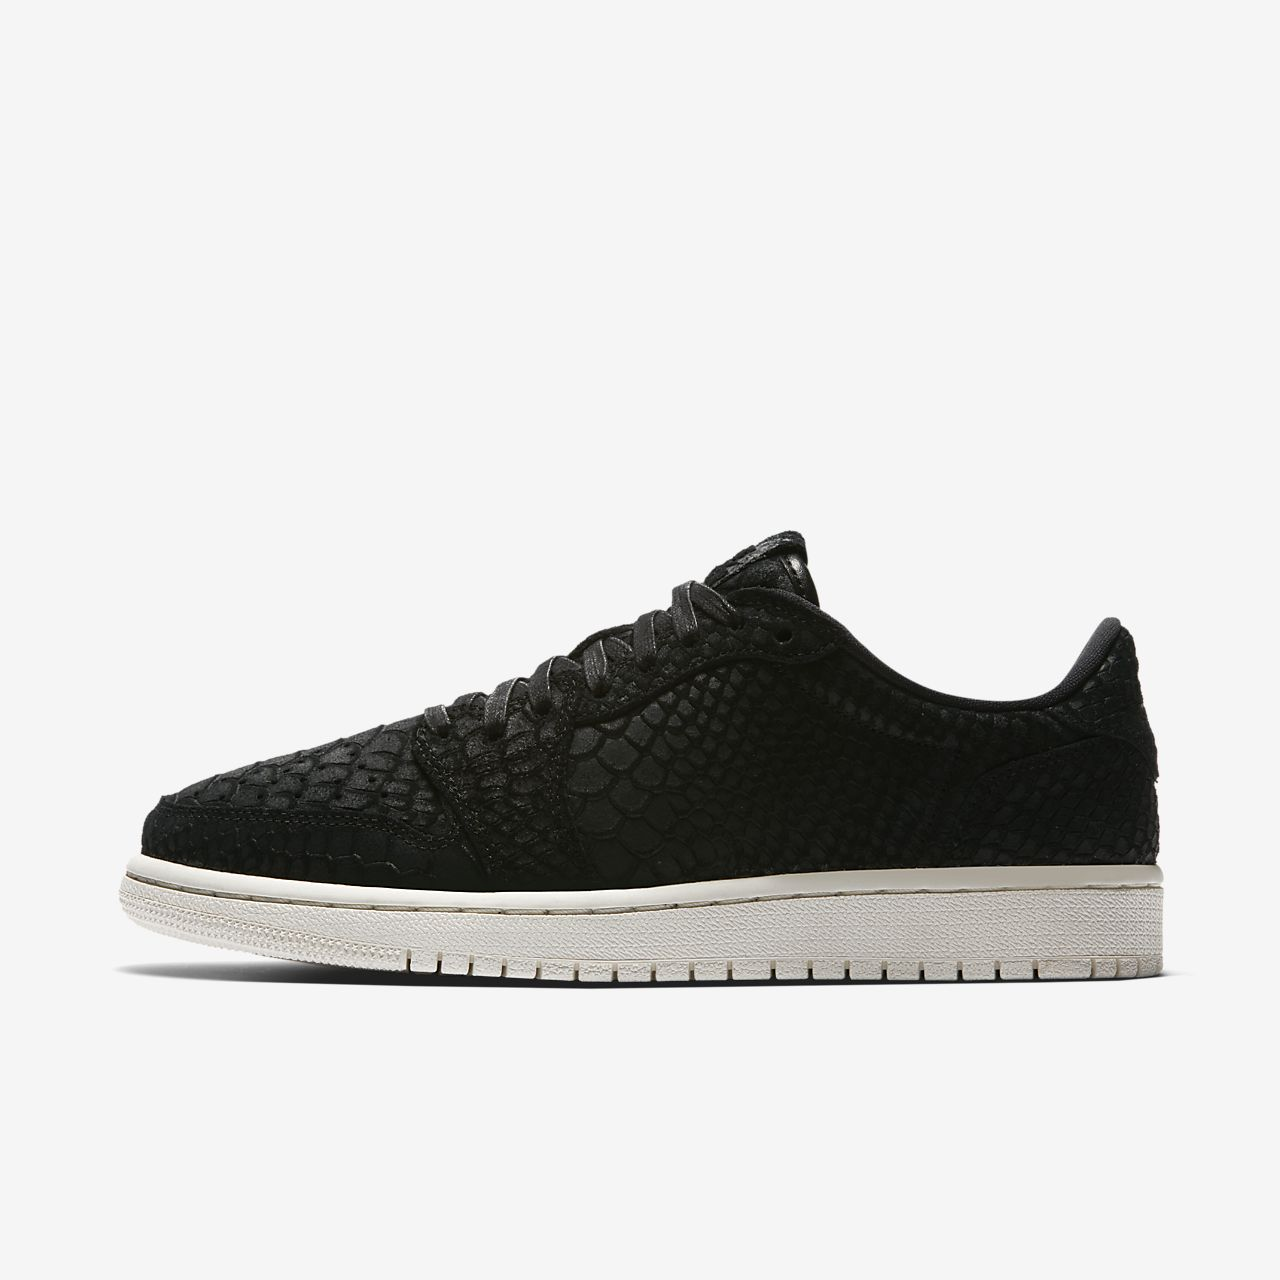 jordan air 1 retro low nz